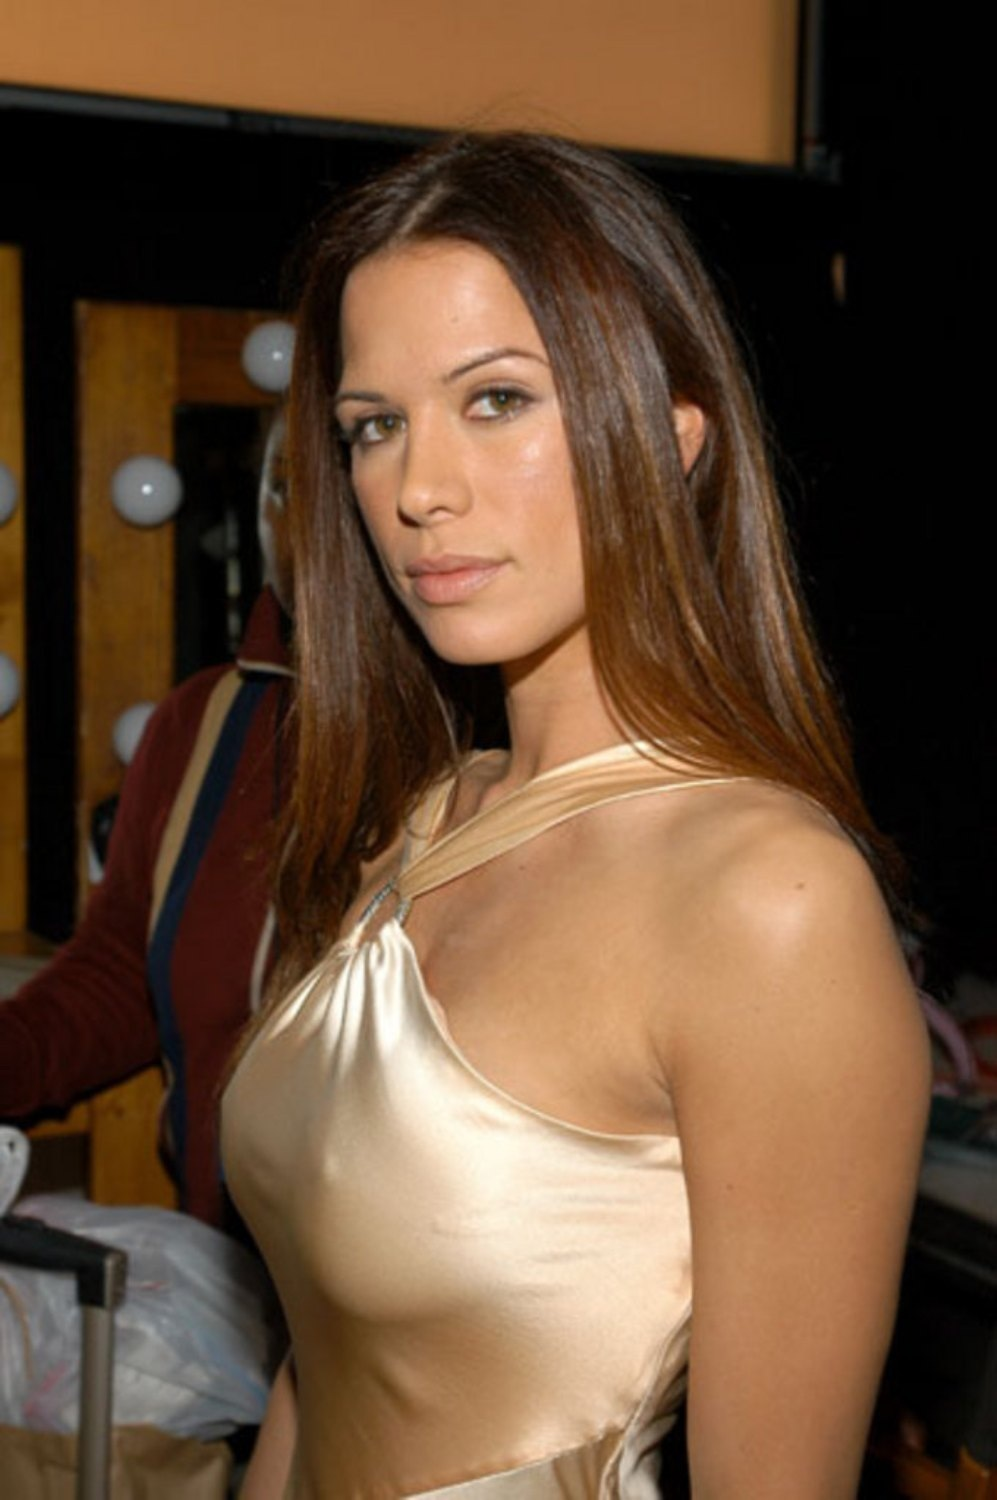 Rhona mitra beowulf - 2 part 5